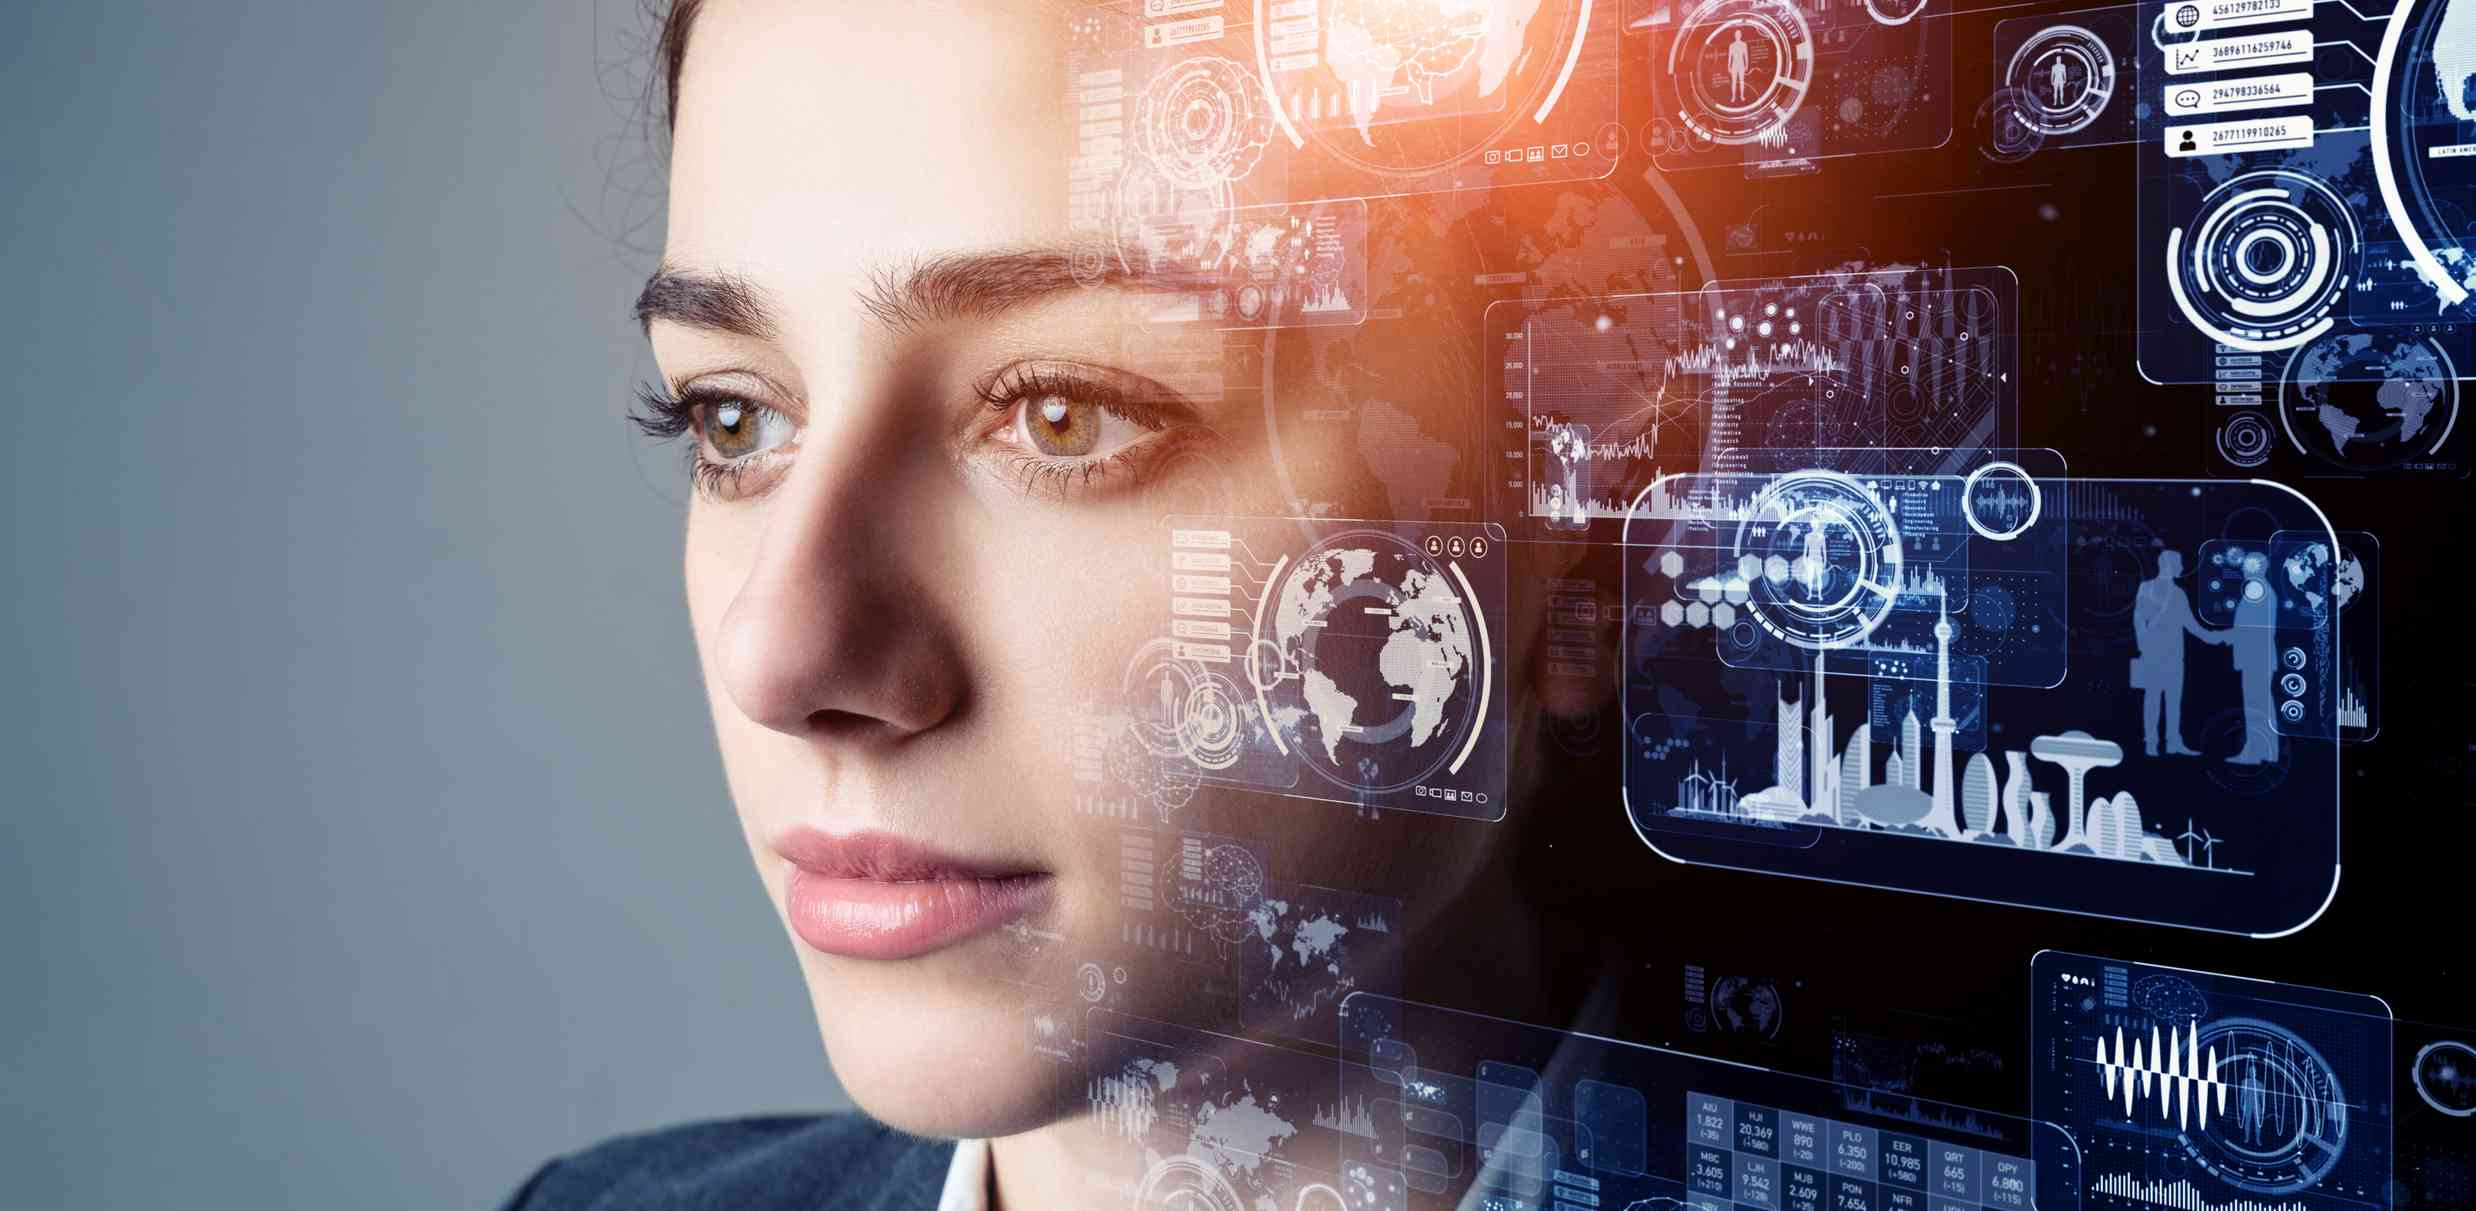 An image of a woman with artificial intelligence graphics overlayed on part of her face and her brain area.